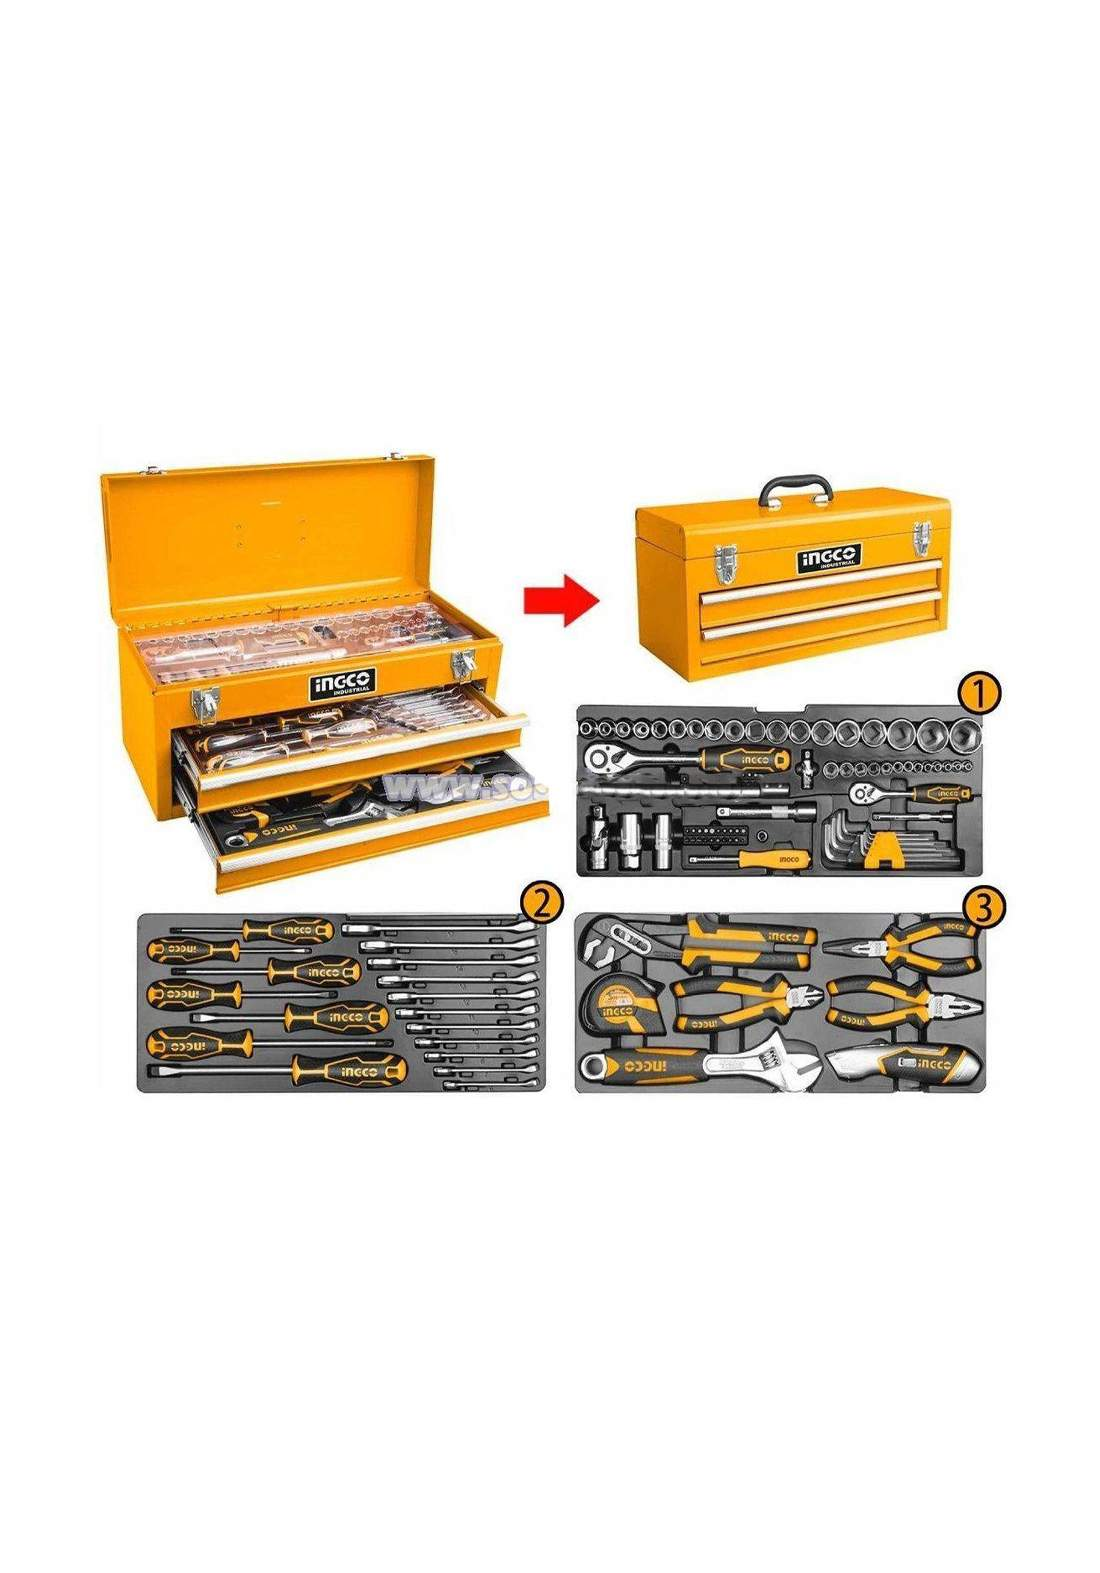 Ingco HTCS220971  Industrial Hand Tool Chest Set IHT 97 Pcs صندوق عدد يدوية